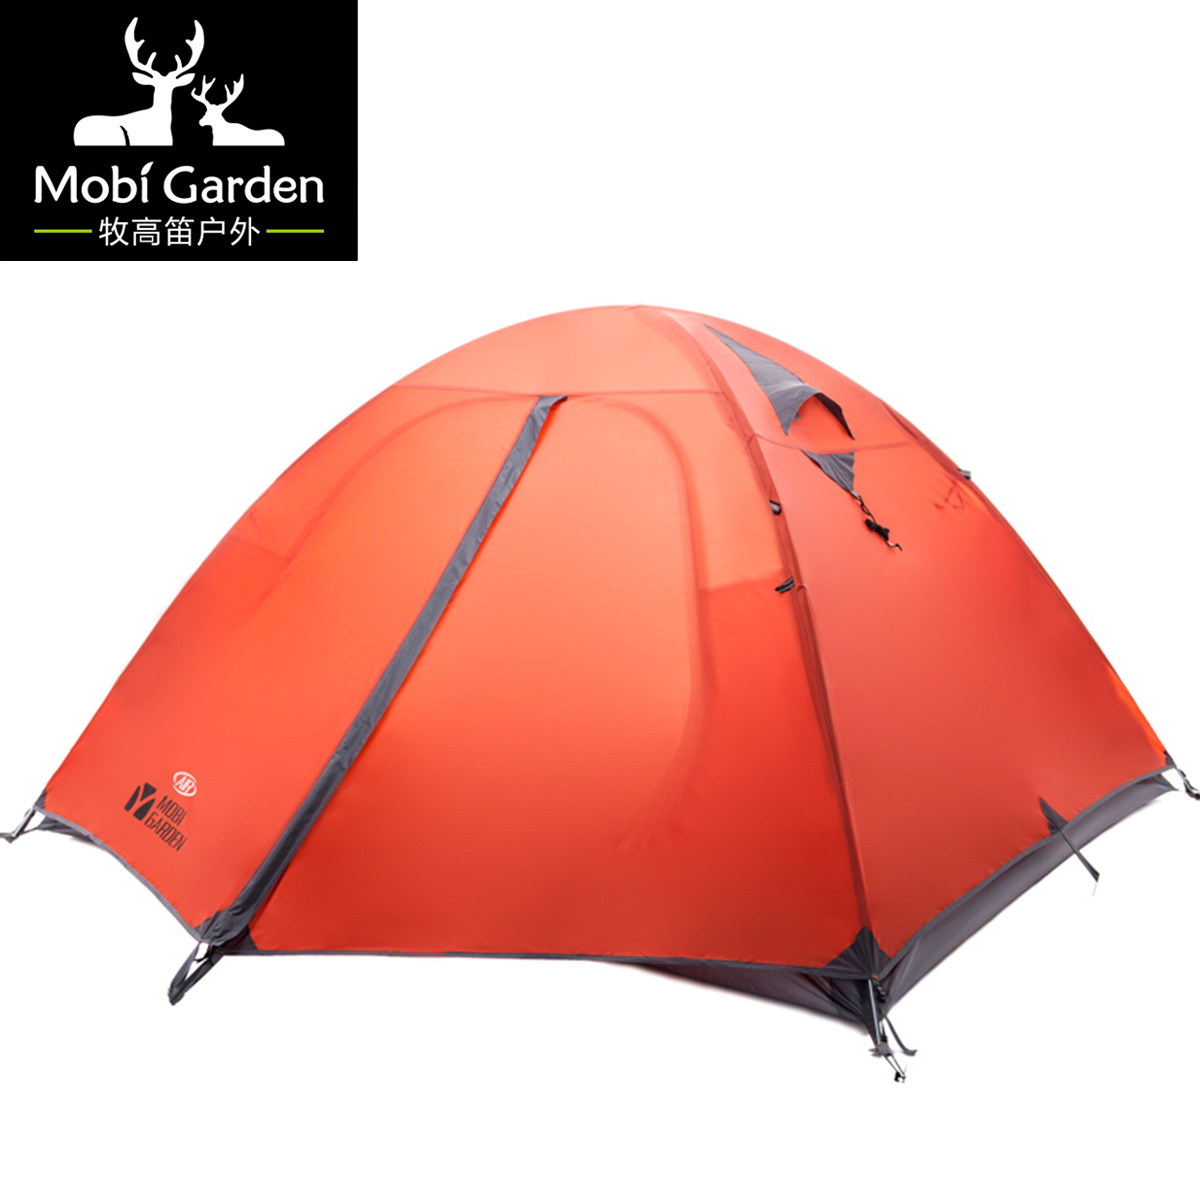 Cold Mountain 3AIR tent Outdoor hiking camping aluminum alloy 3-4Person tent waterproof windproof breathable outdoor camping hiking automatic camping tent 4person double layer family tent sun shelter gazebo beach tent awning tourist tent